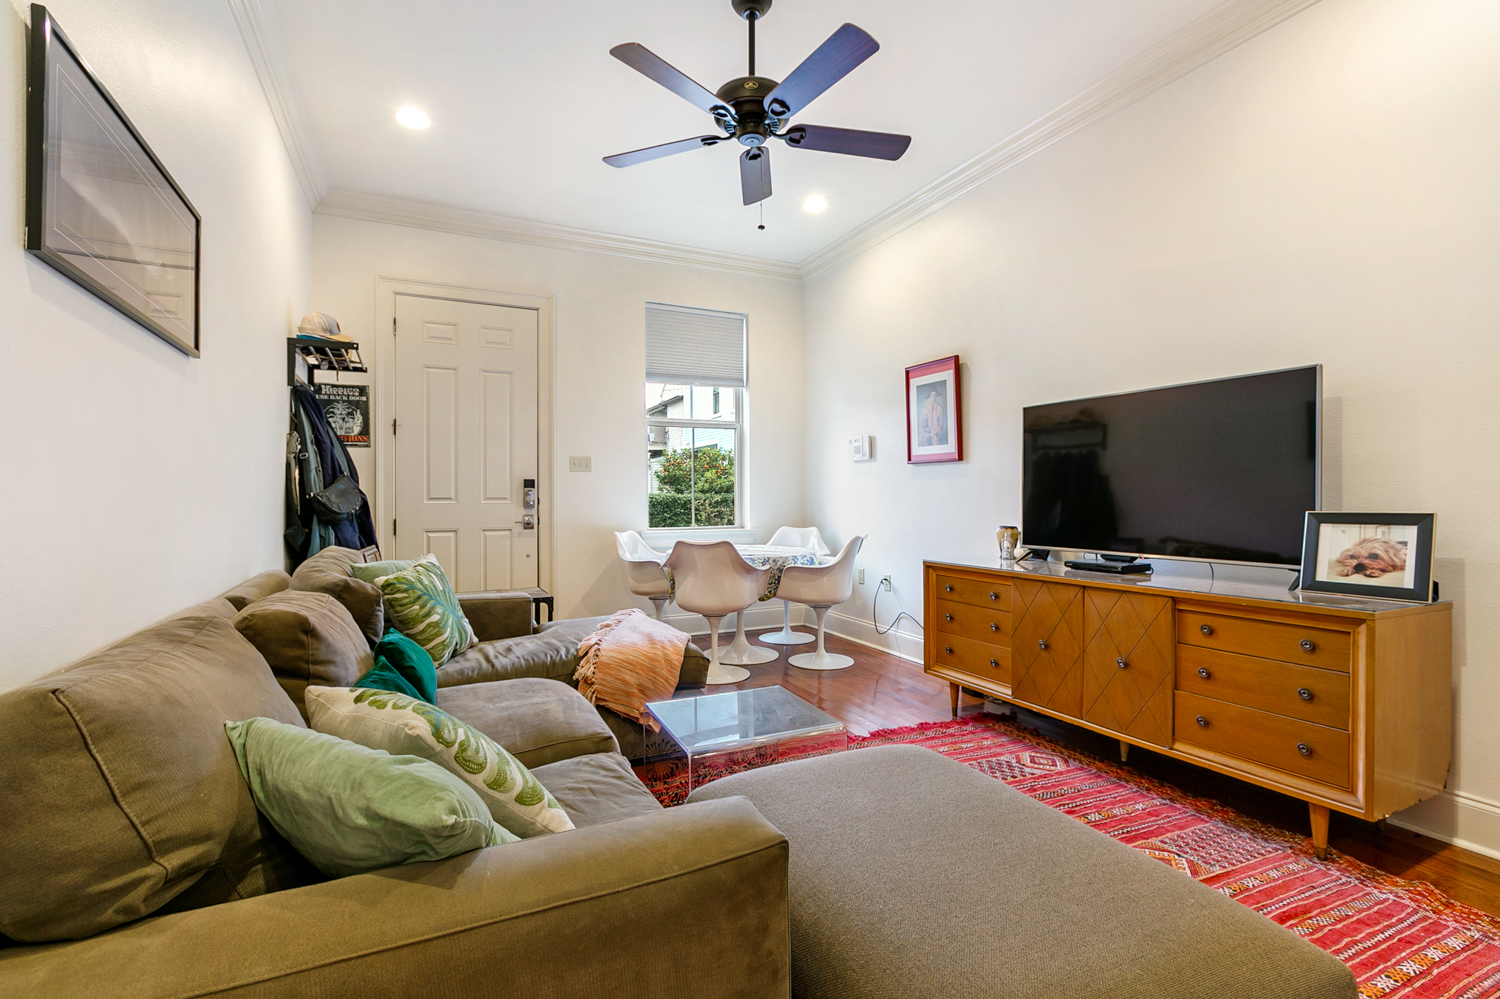 Uptown, Condo, 2 beds, 1.5 baths, $2500 per month New Orleans Rental - devie image_2